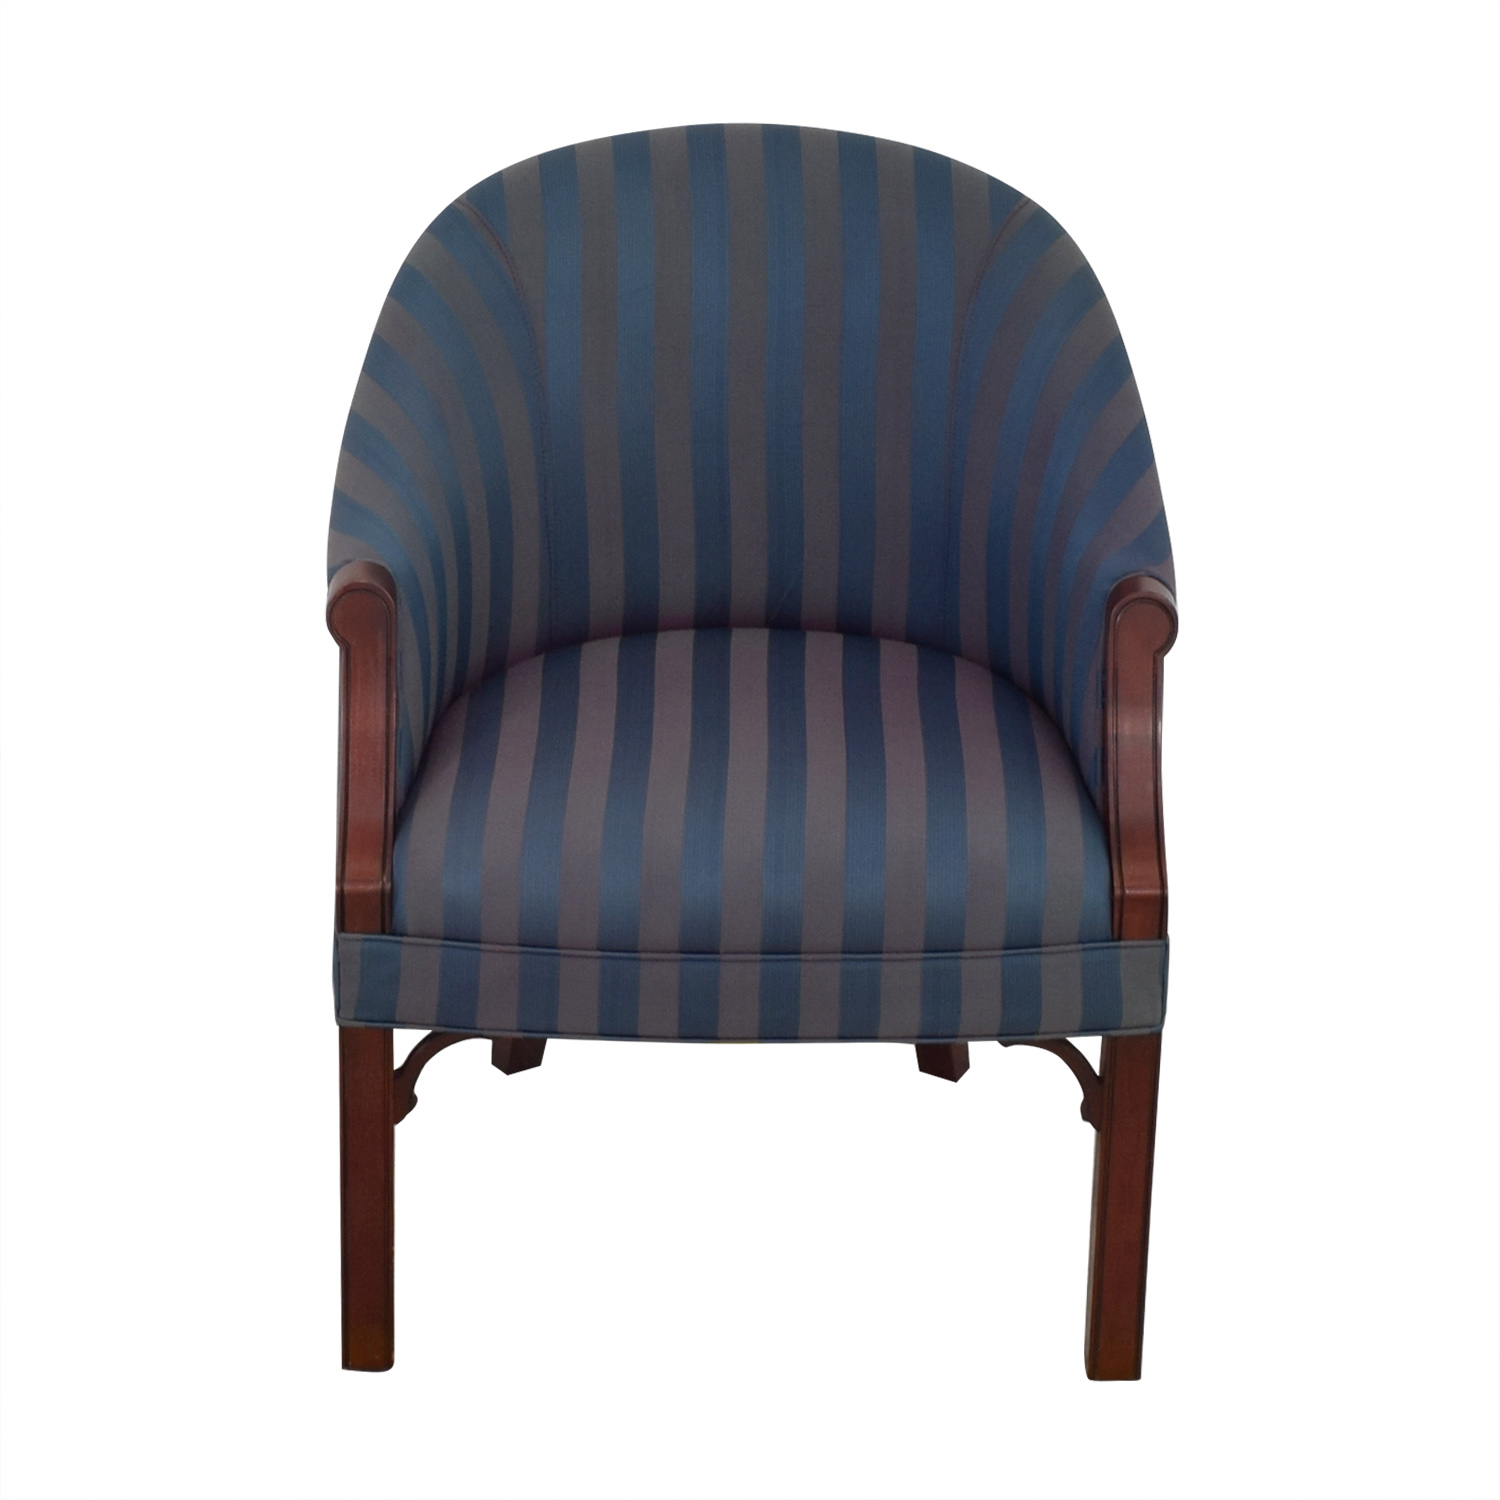 Kimball Independence Newcastle Chair / Accent Chairs